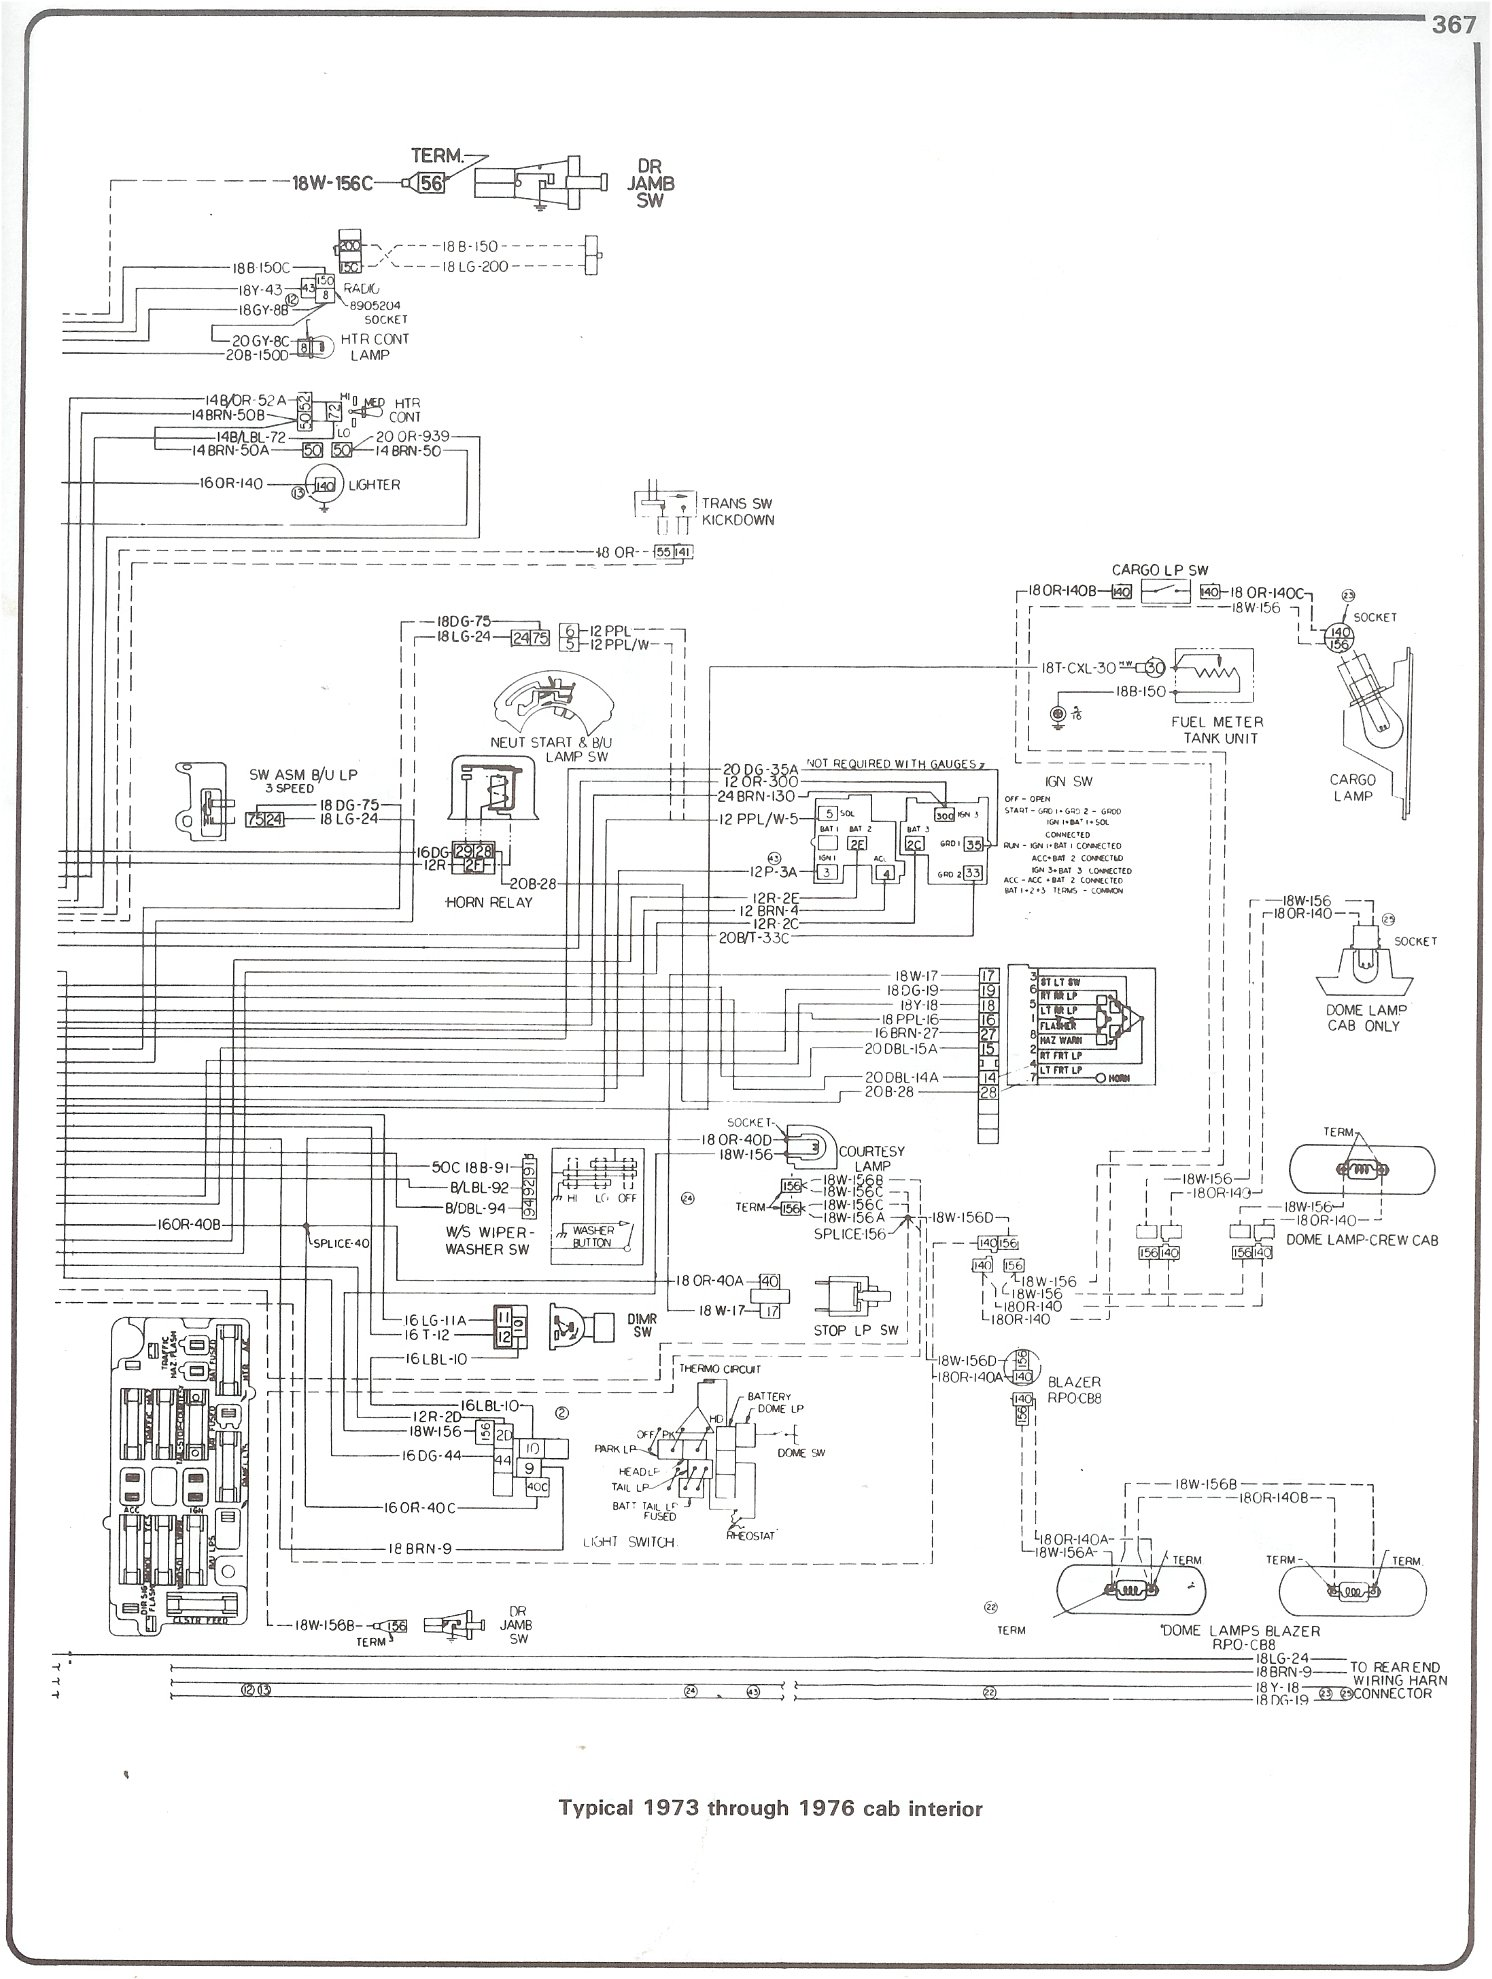 1965 chevy c10 wiring diagram complete 73-87 wiring diagrams